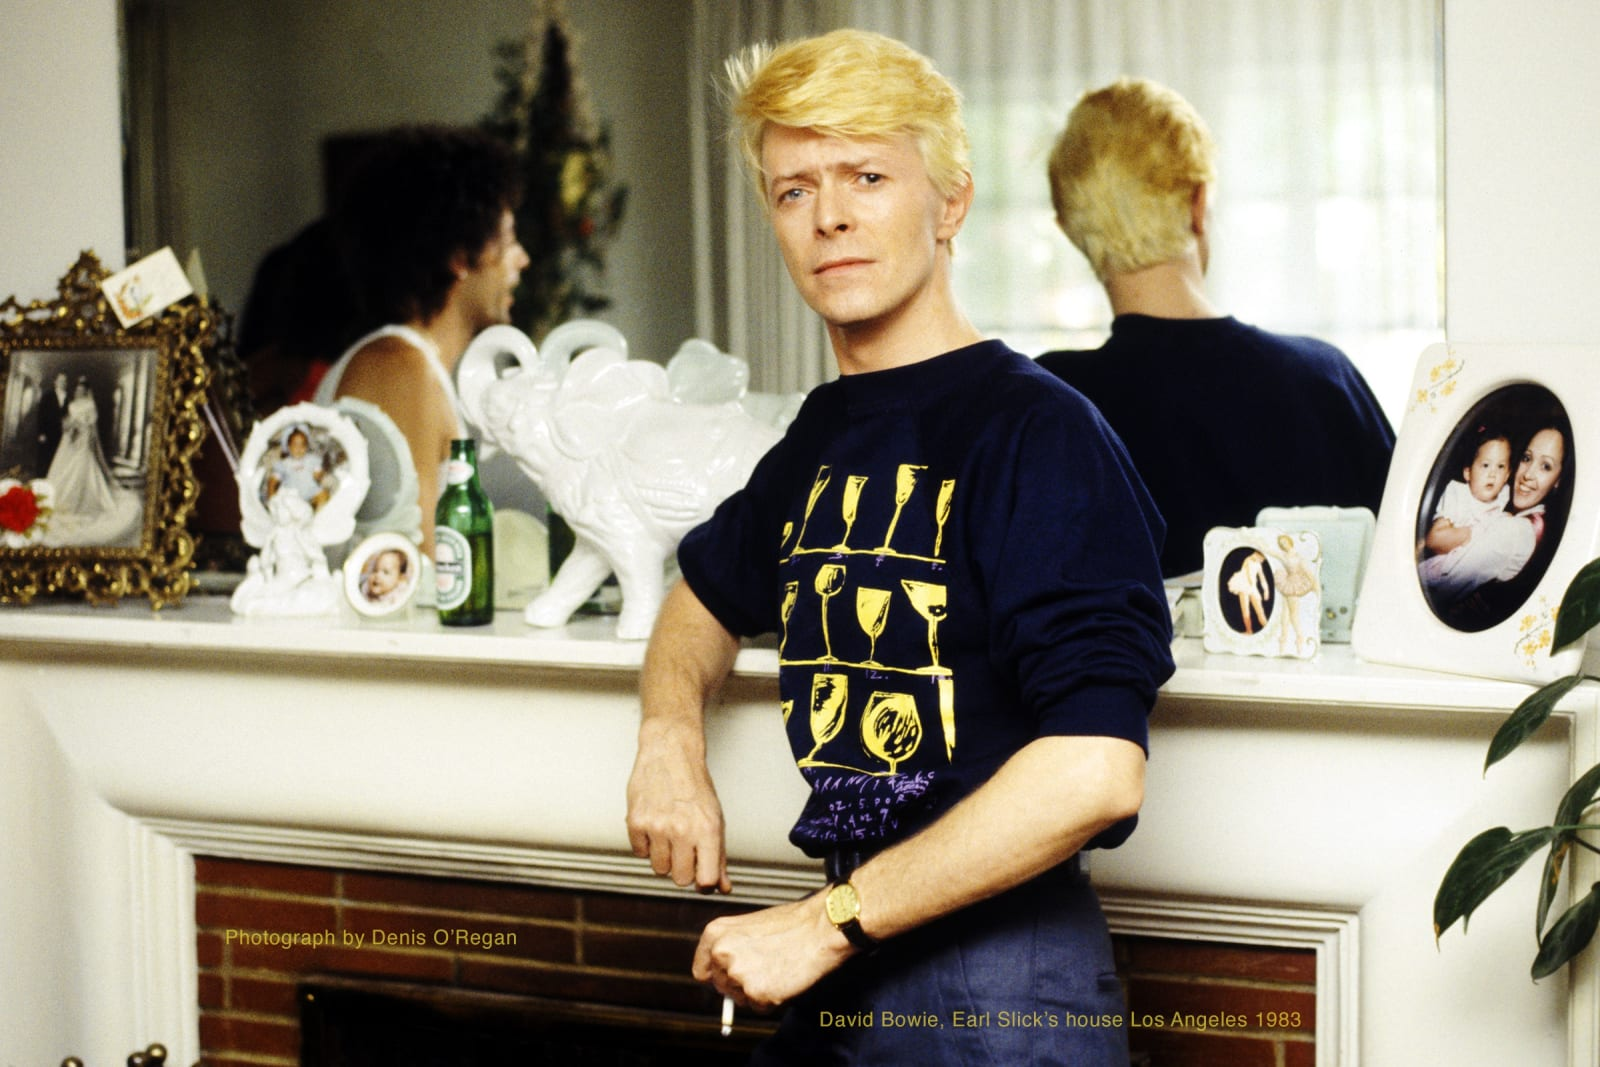 DAVID BOWIE, David Earl Slick's House, 1983